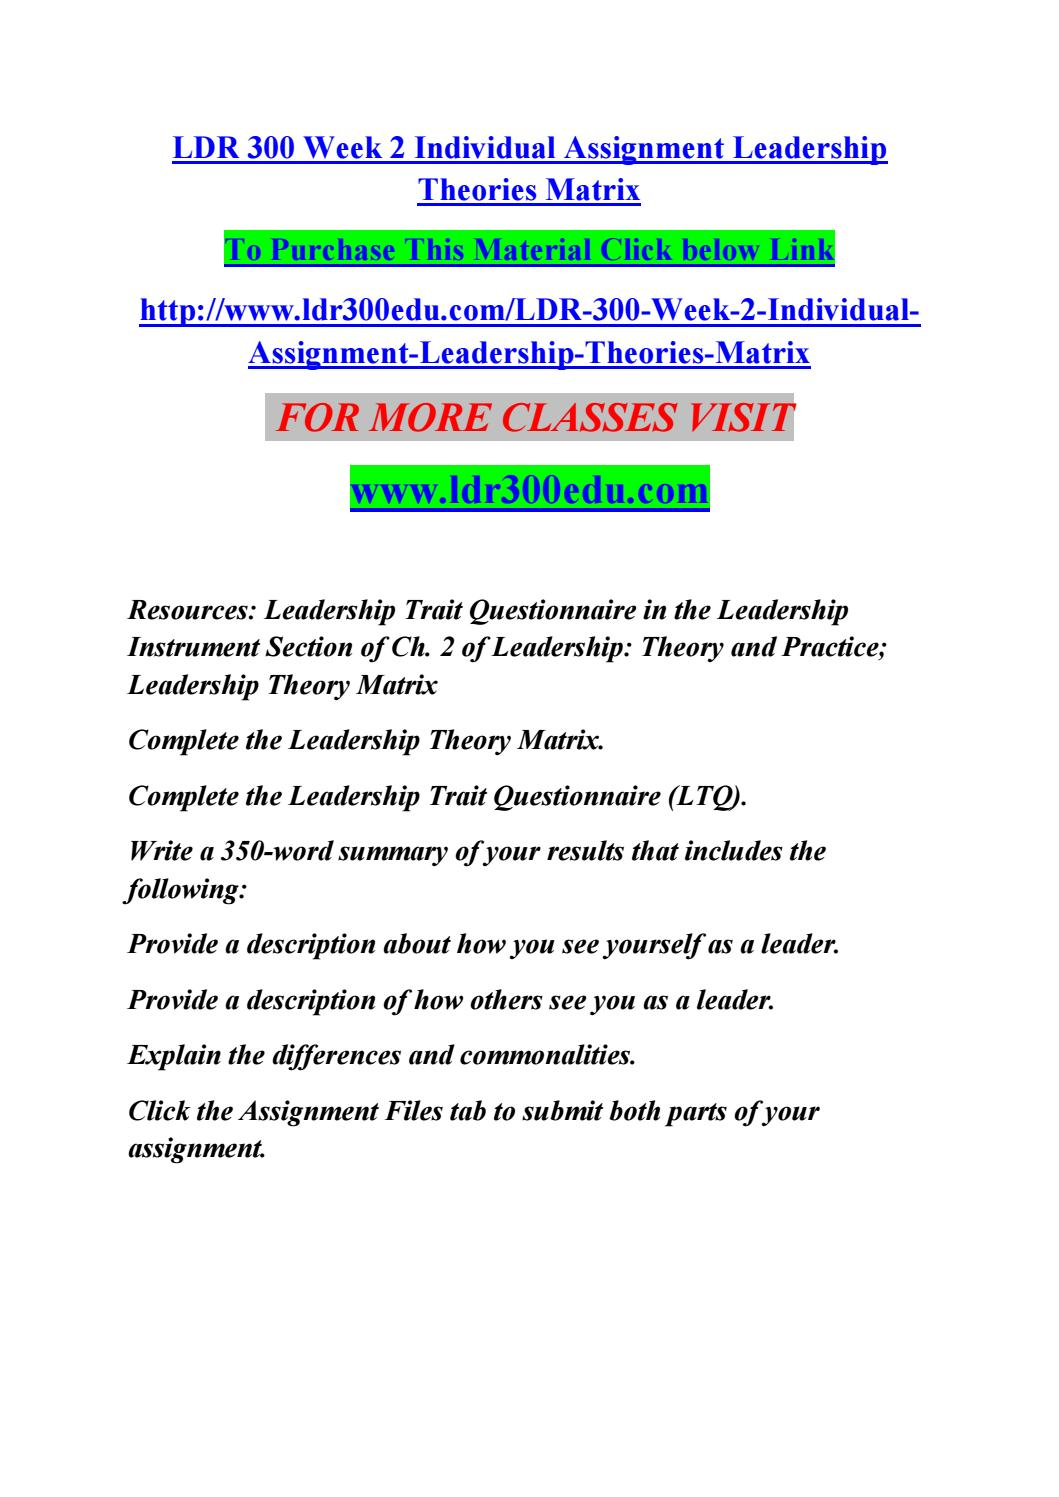 Ldr 300 week 2 individual assignment leadership theories matrix by ...